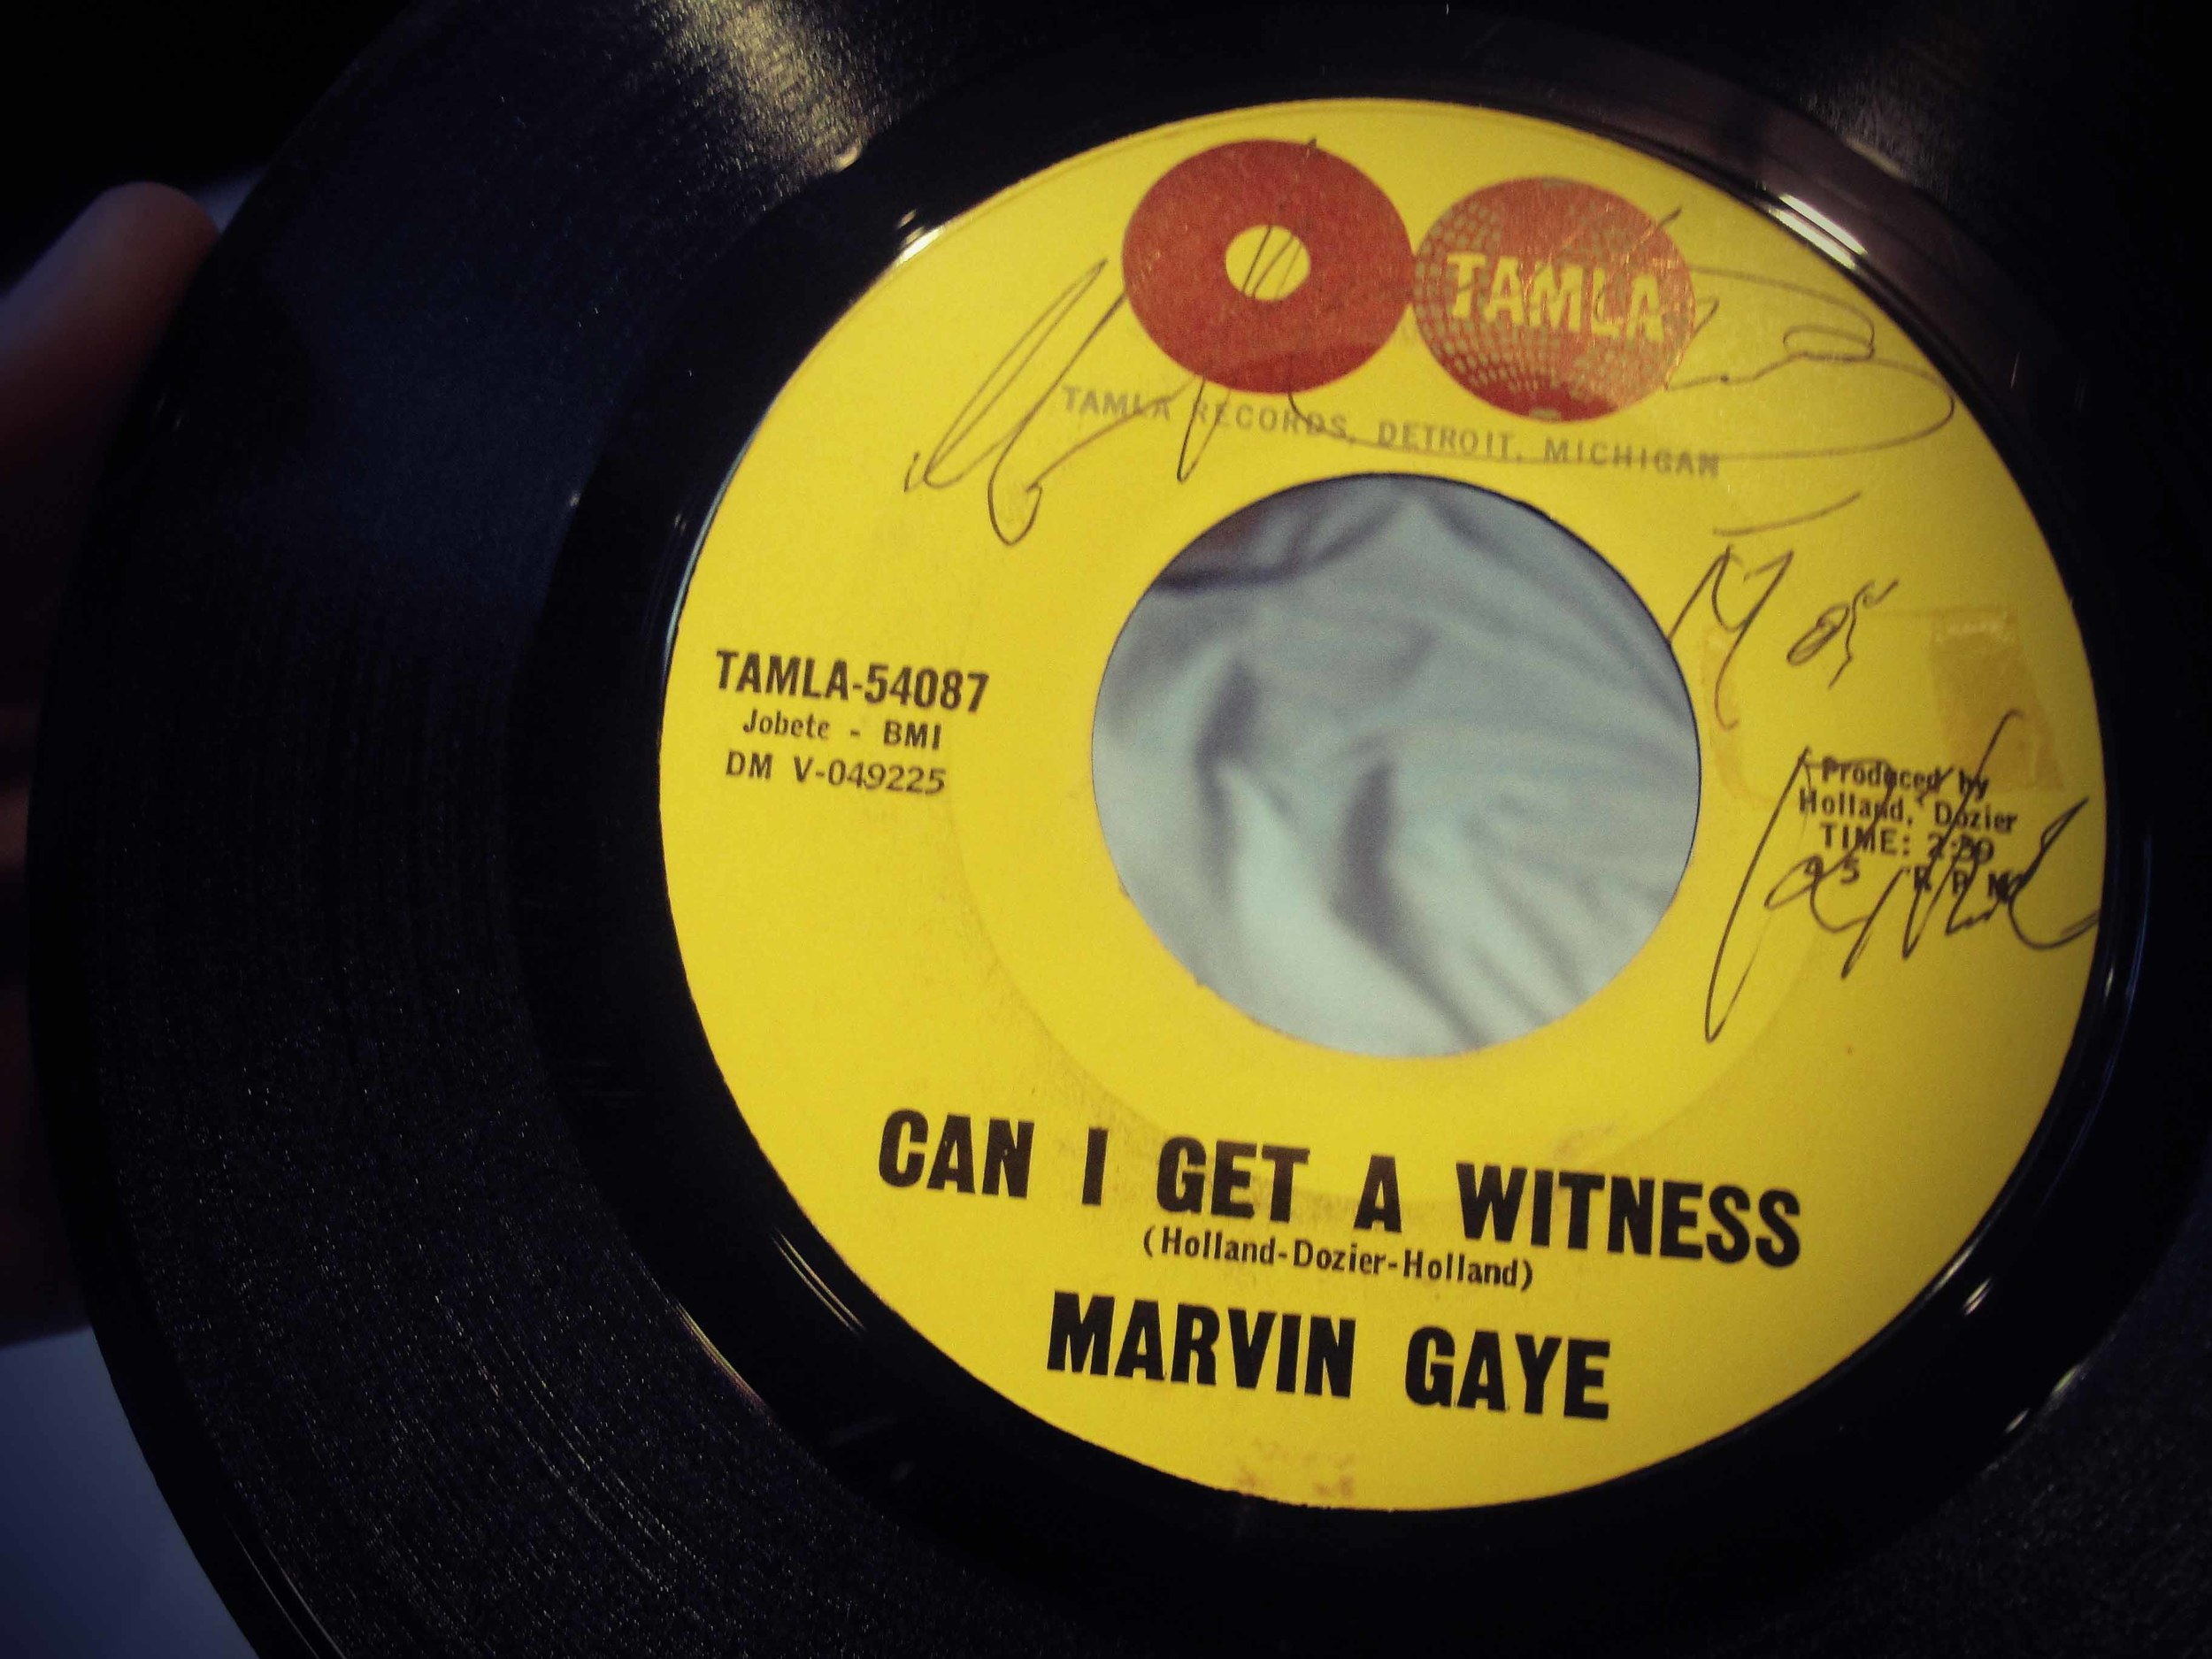 marvin gaye can i get a witness copy.jpg